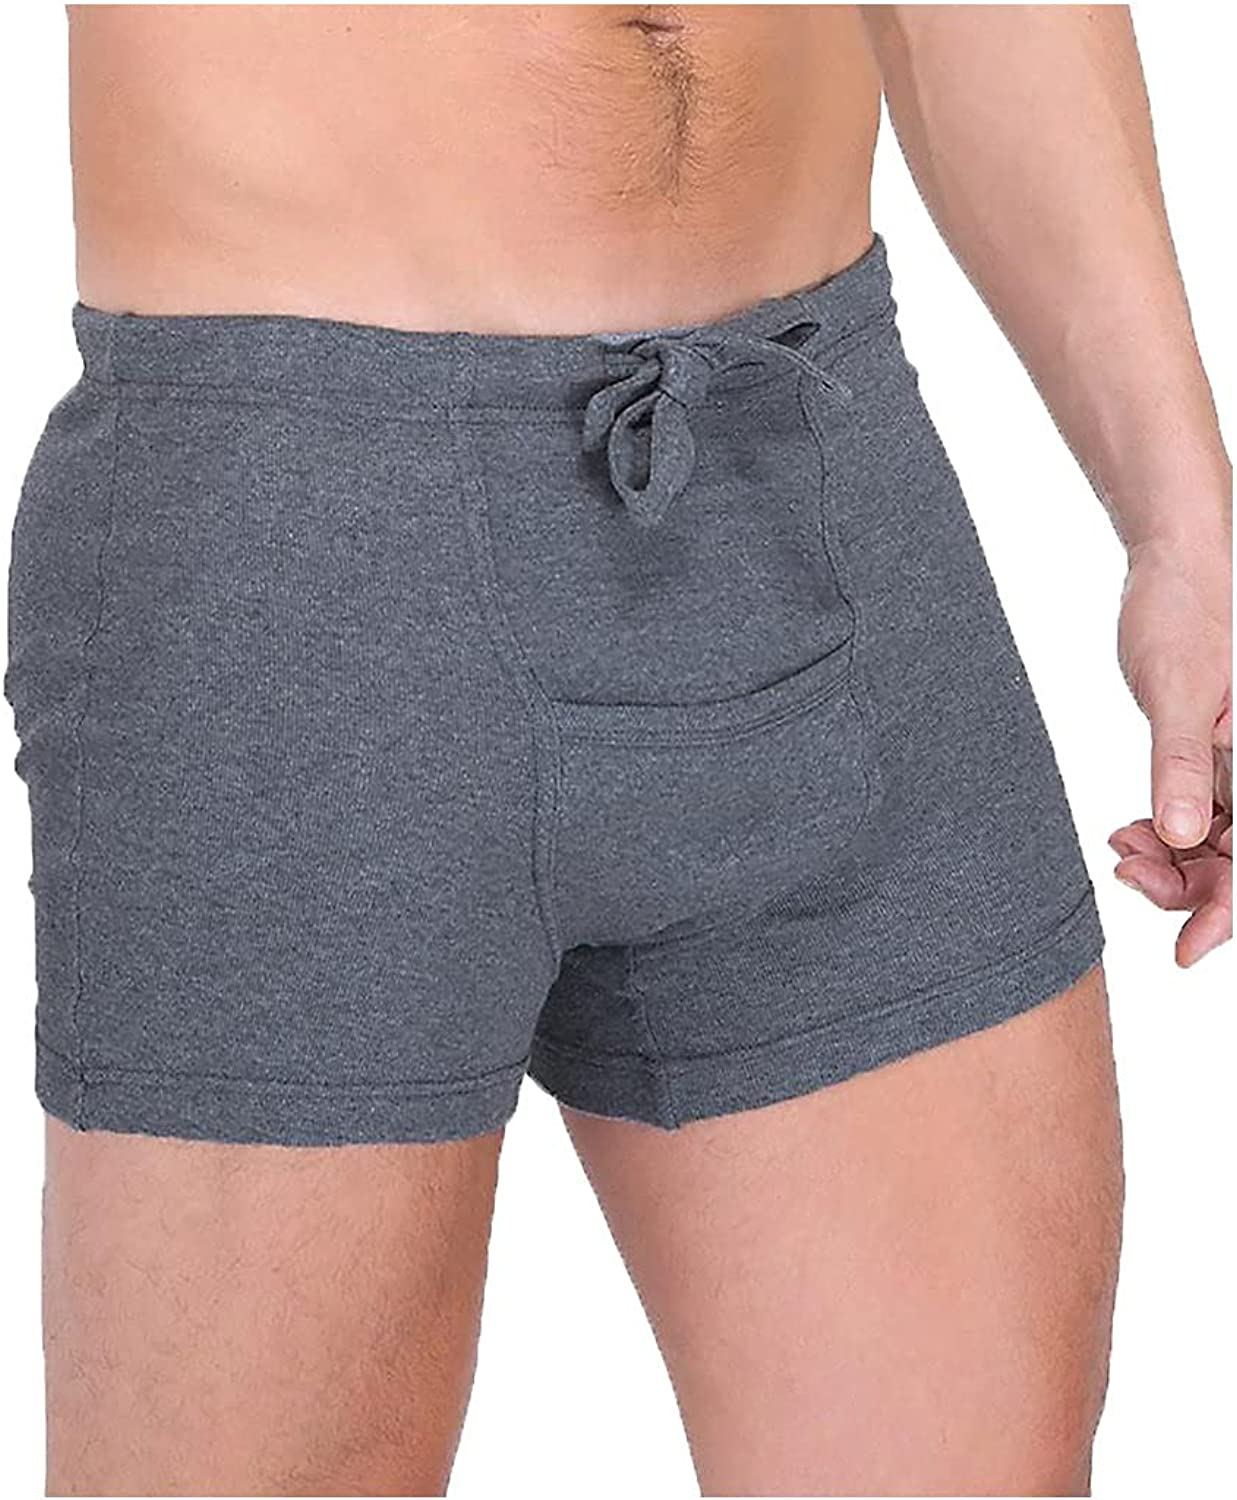 Cottonique Men's Hypoallergenic Ribbed Drawstring gift Boxer wi Over item handling ☆ Brief